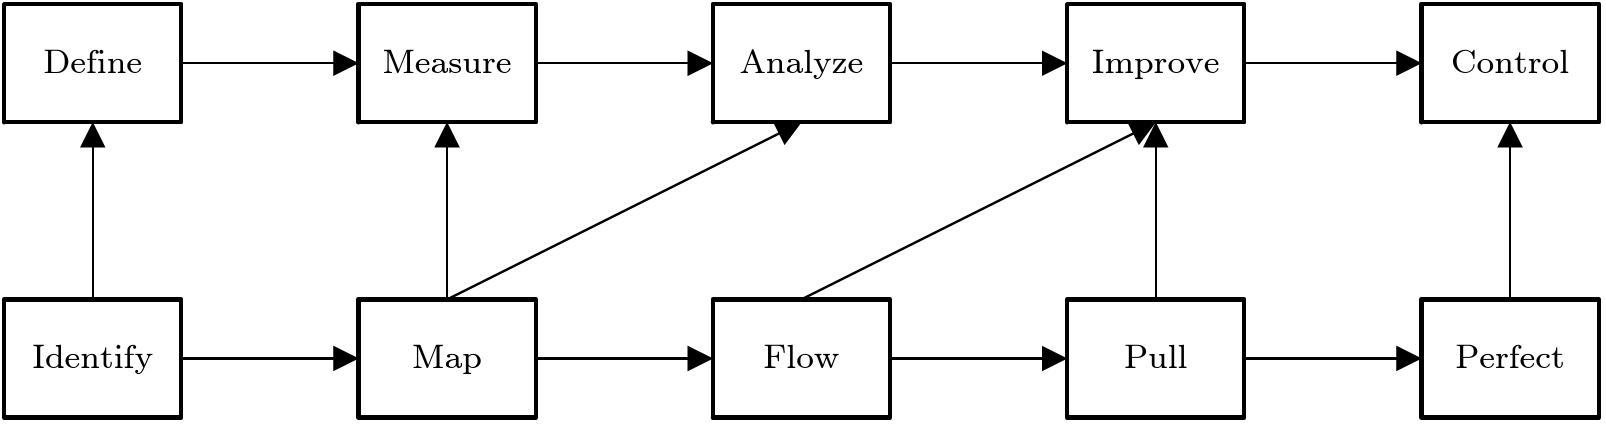 Relationship between lean thinking and Six Sigma phases (adapted from Salah et al., 2010)